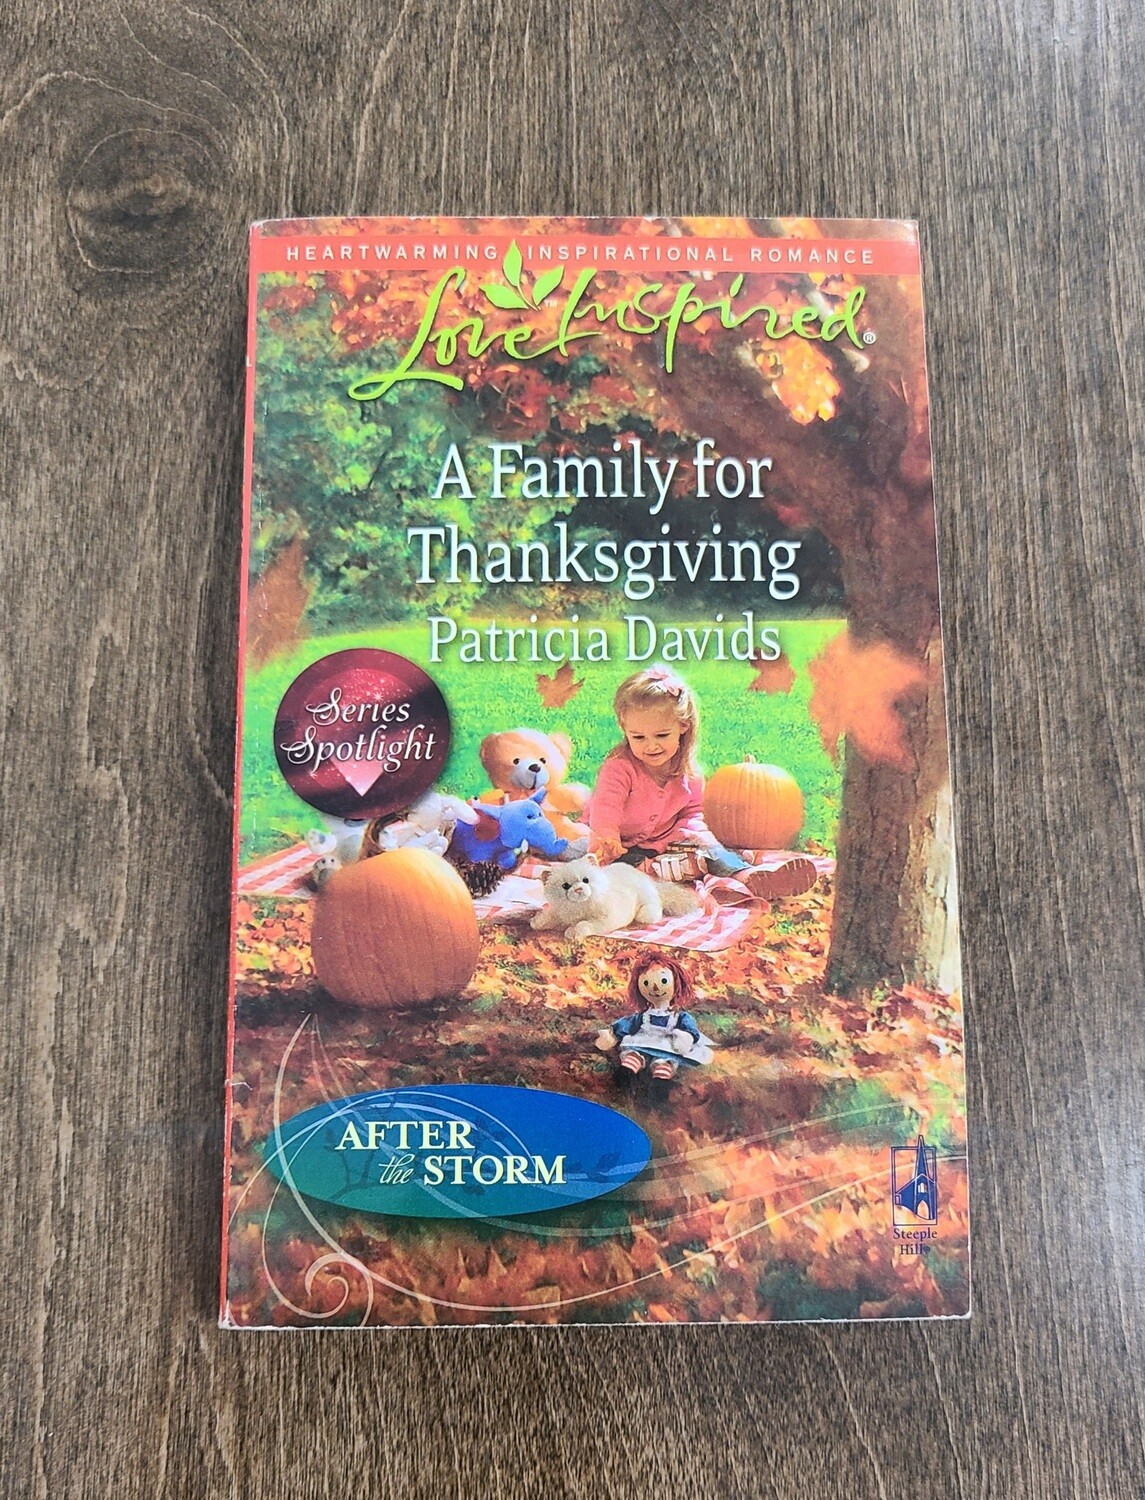 A Family for Thanksgiving by Patricia Davids